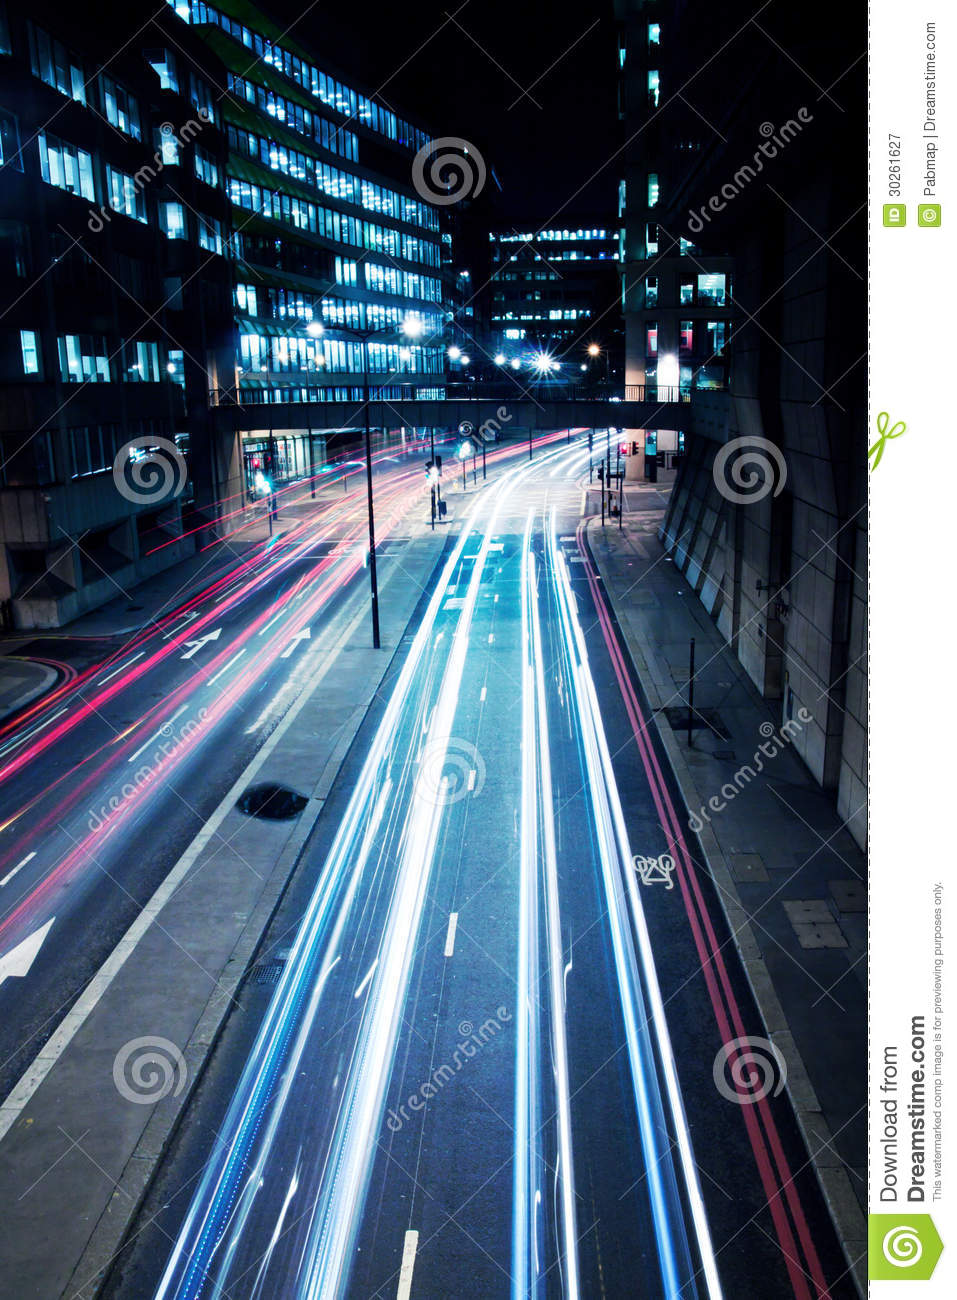 Cars Lights On London Street By Night Royalty Free Stock ...  Cars Lights On ...